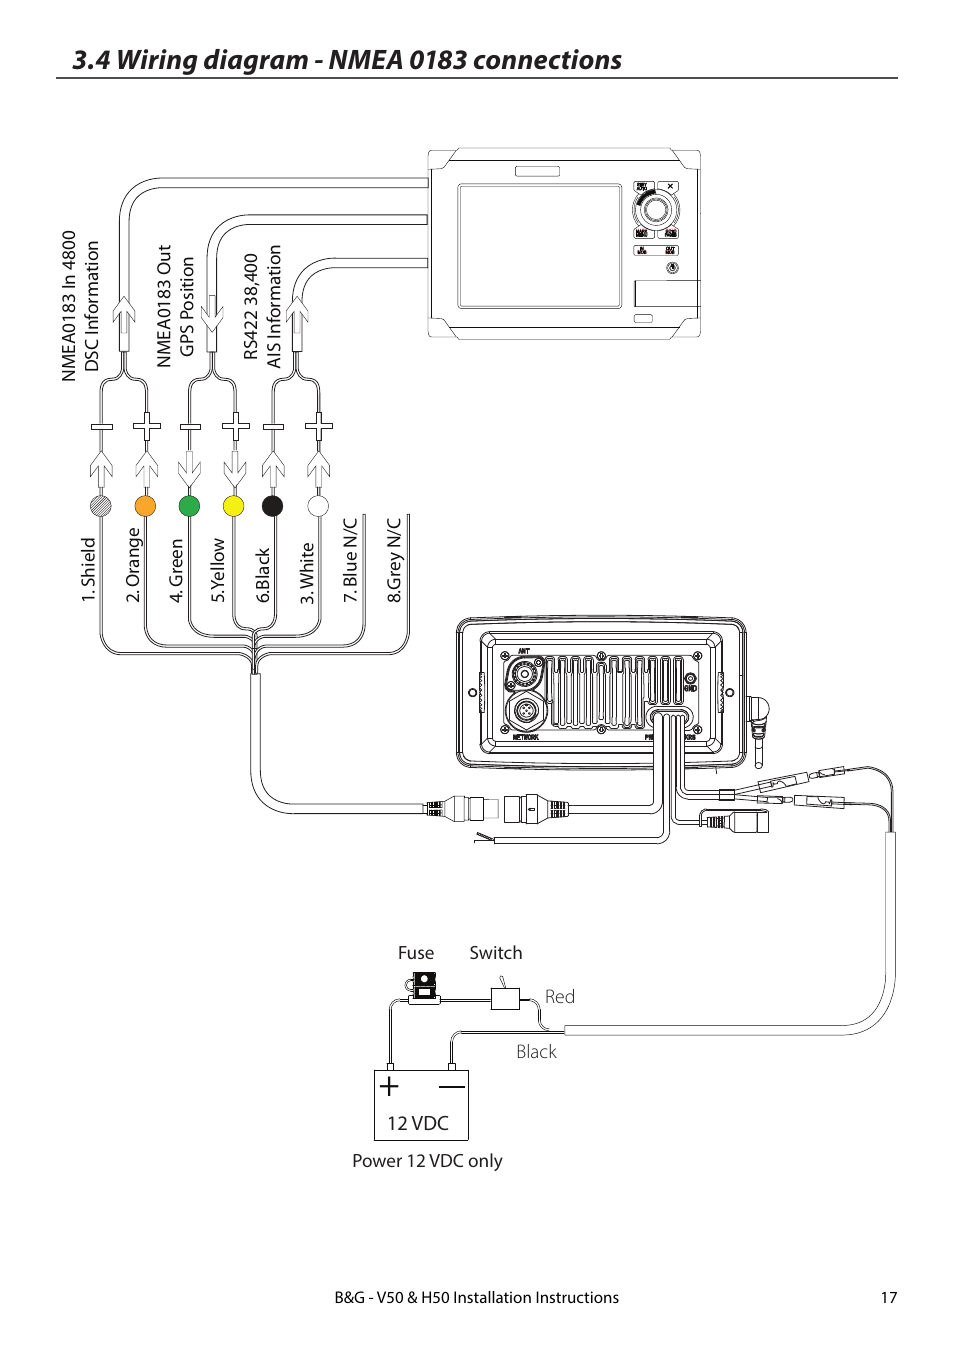 hight resolution of 4 wiring diagram nmea 0183 connections b g h50 wireless vhf handset user manual page 17 22